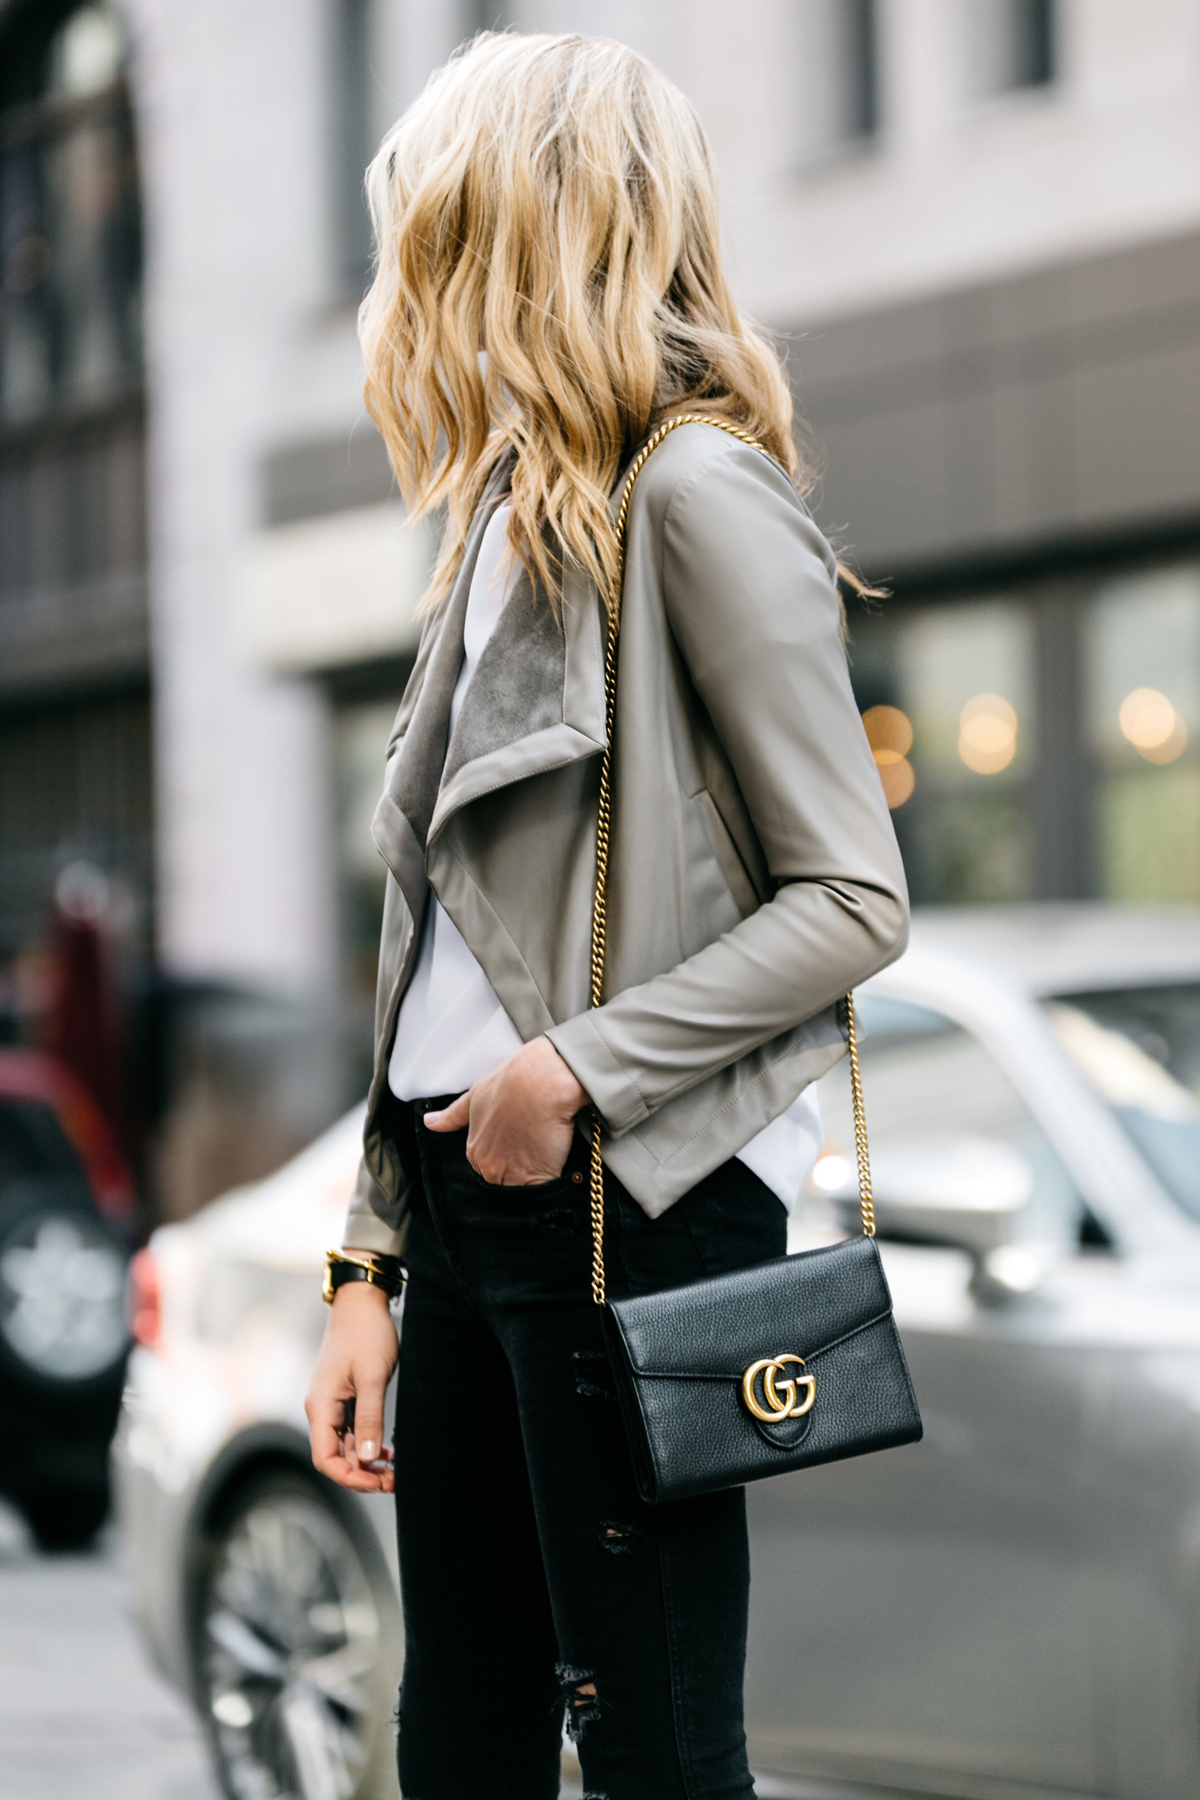 Fashion Jackson, Dallas Blogger, Fashion Blogger, Street Style, BB Dakota Peppin Jacket, White Top, Black Ripped Skinny Jeans, Gucci Marmont Handbag